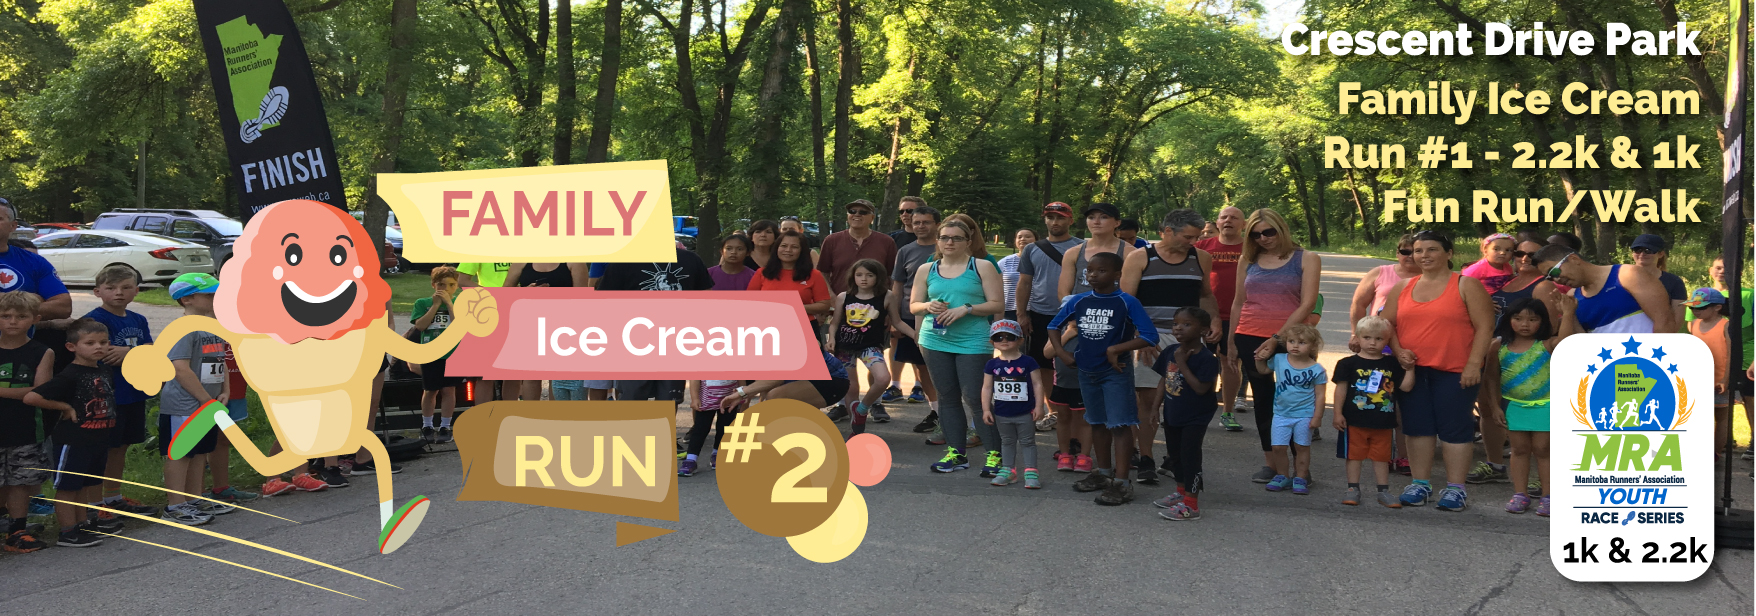 MRA Family Ice Cream Run #2